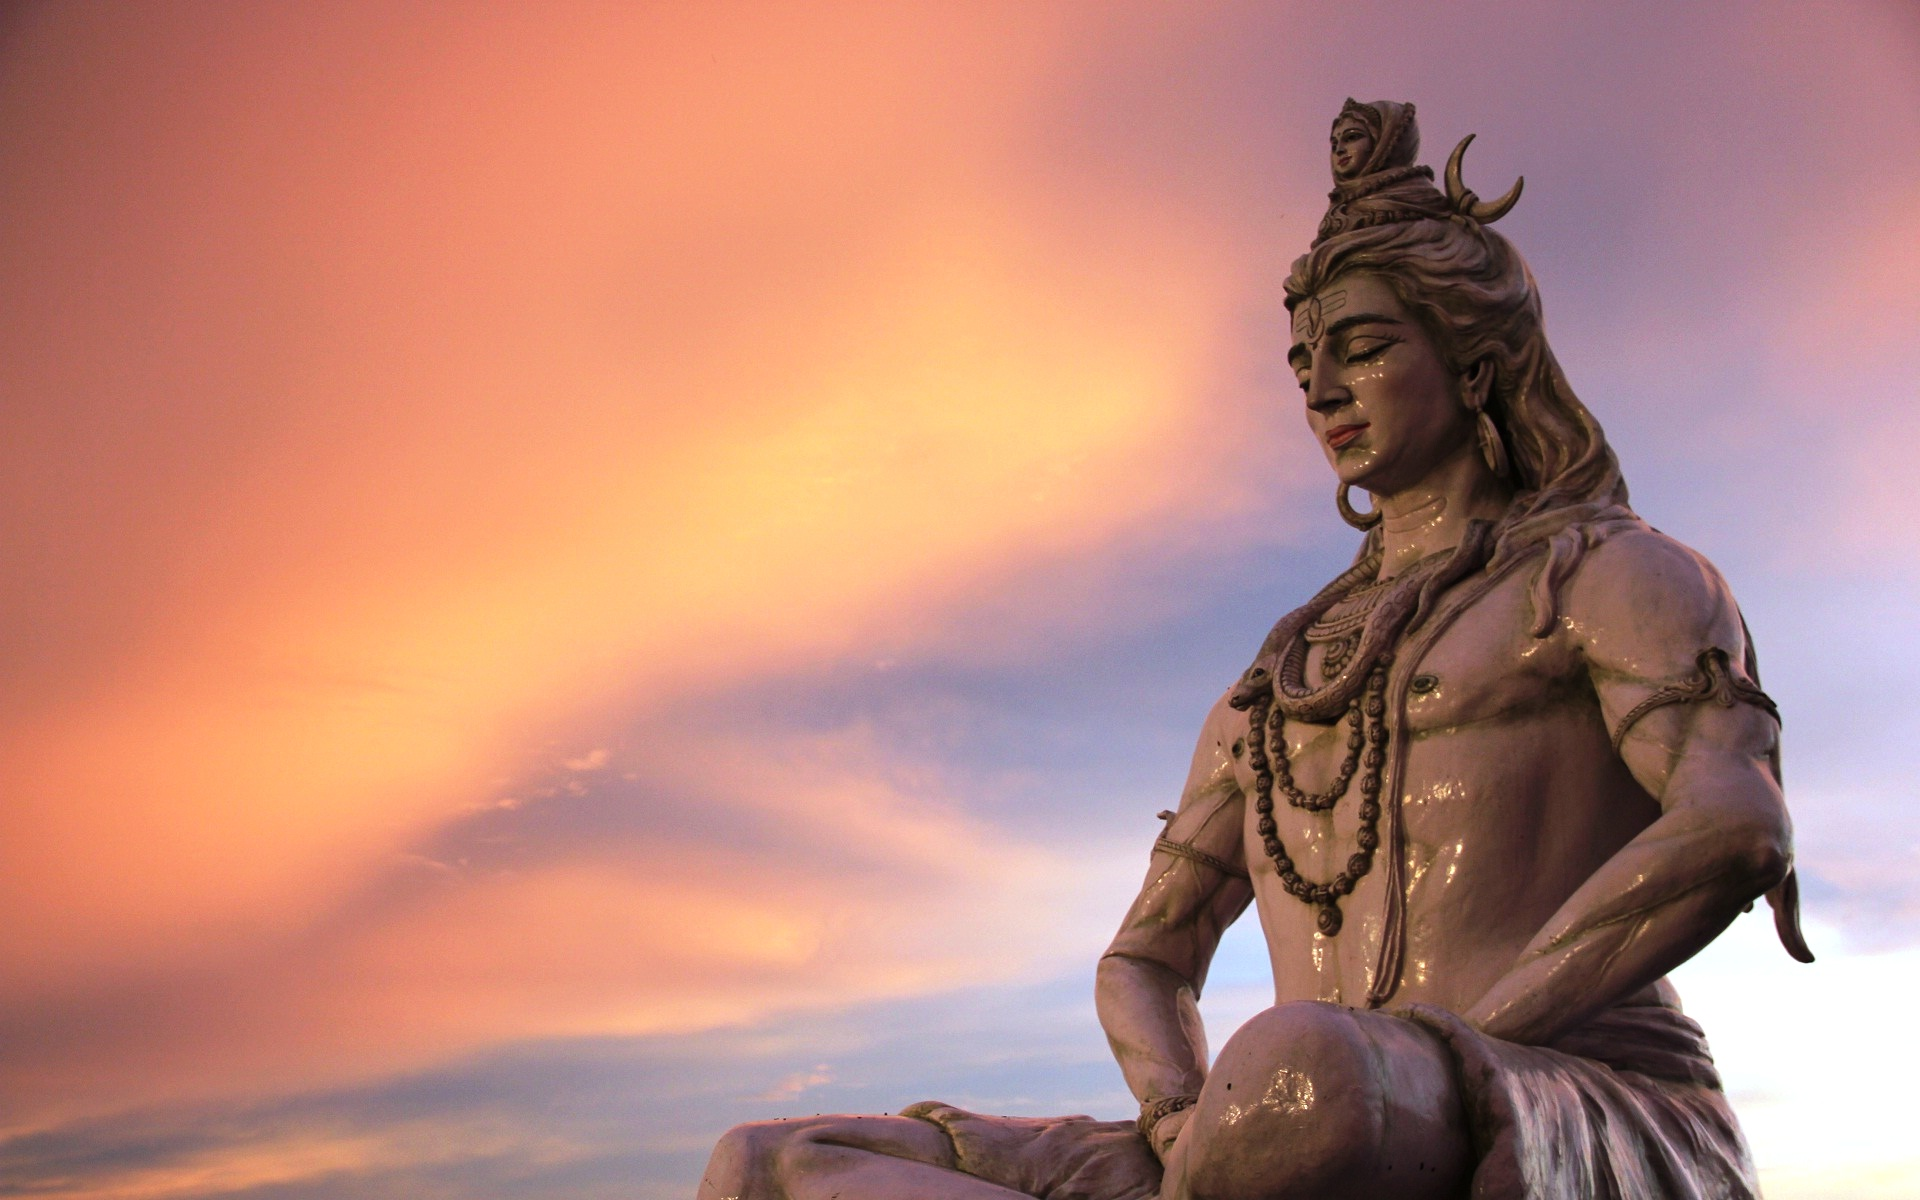 Lord Shiva the biggest statue wallpapers - New hd wallpaperNew hd ...